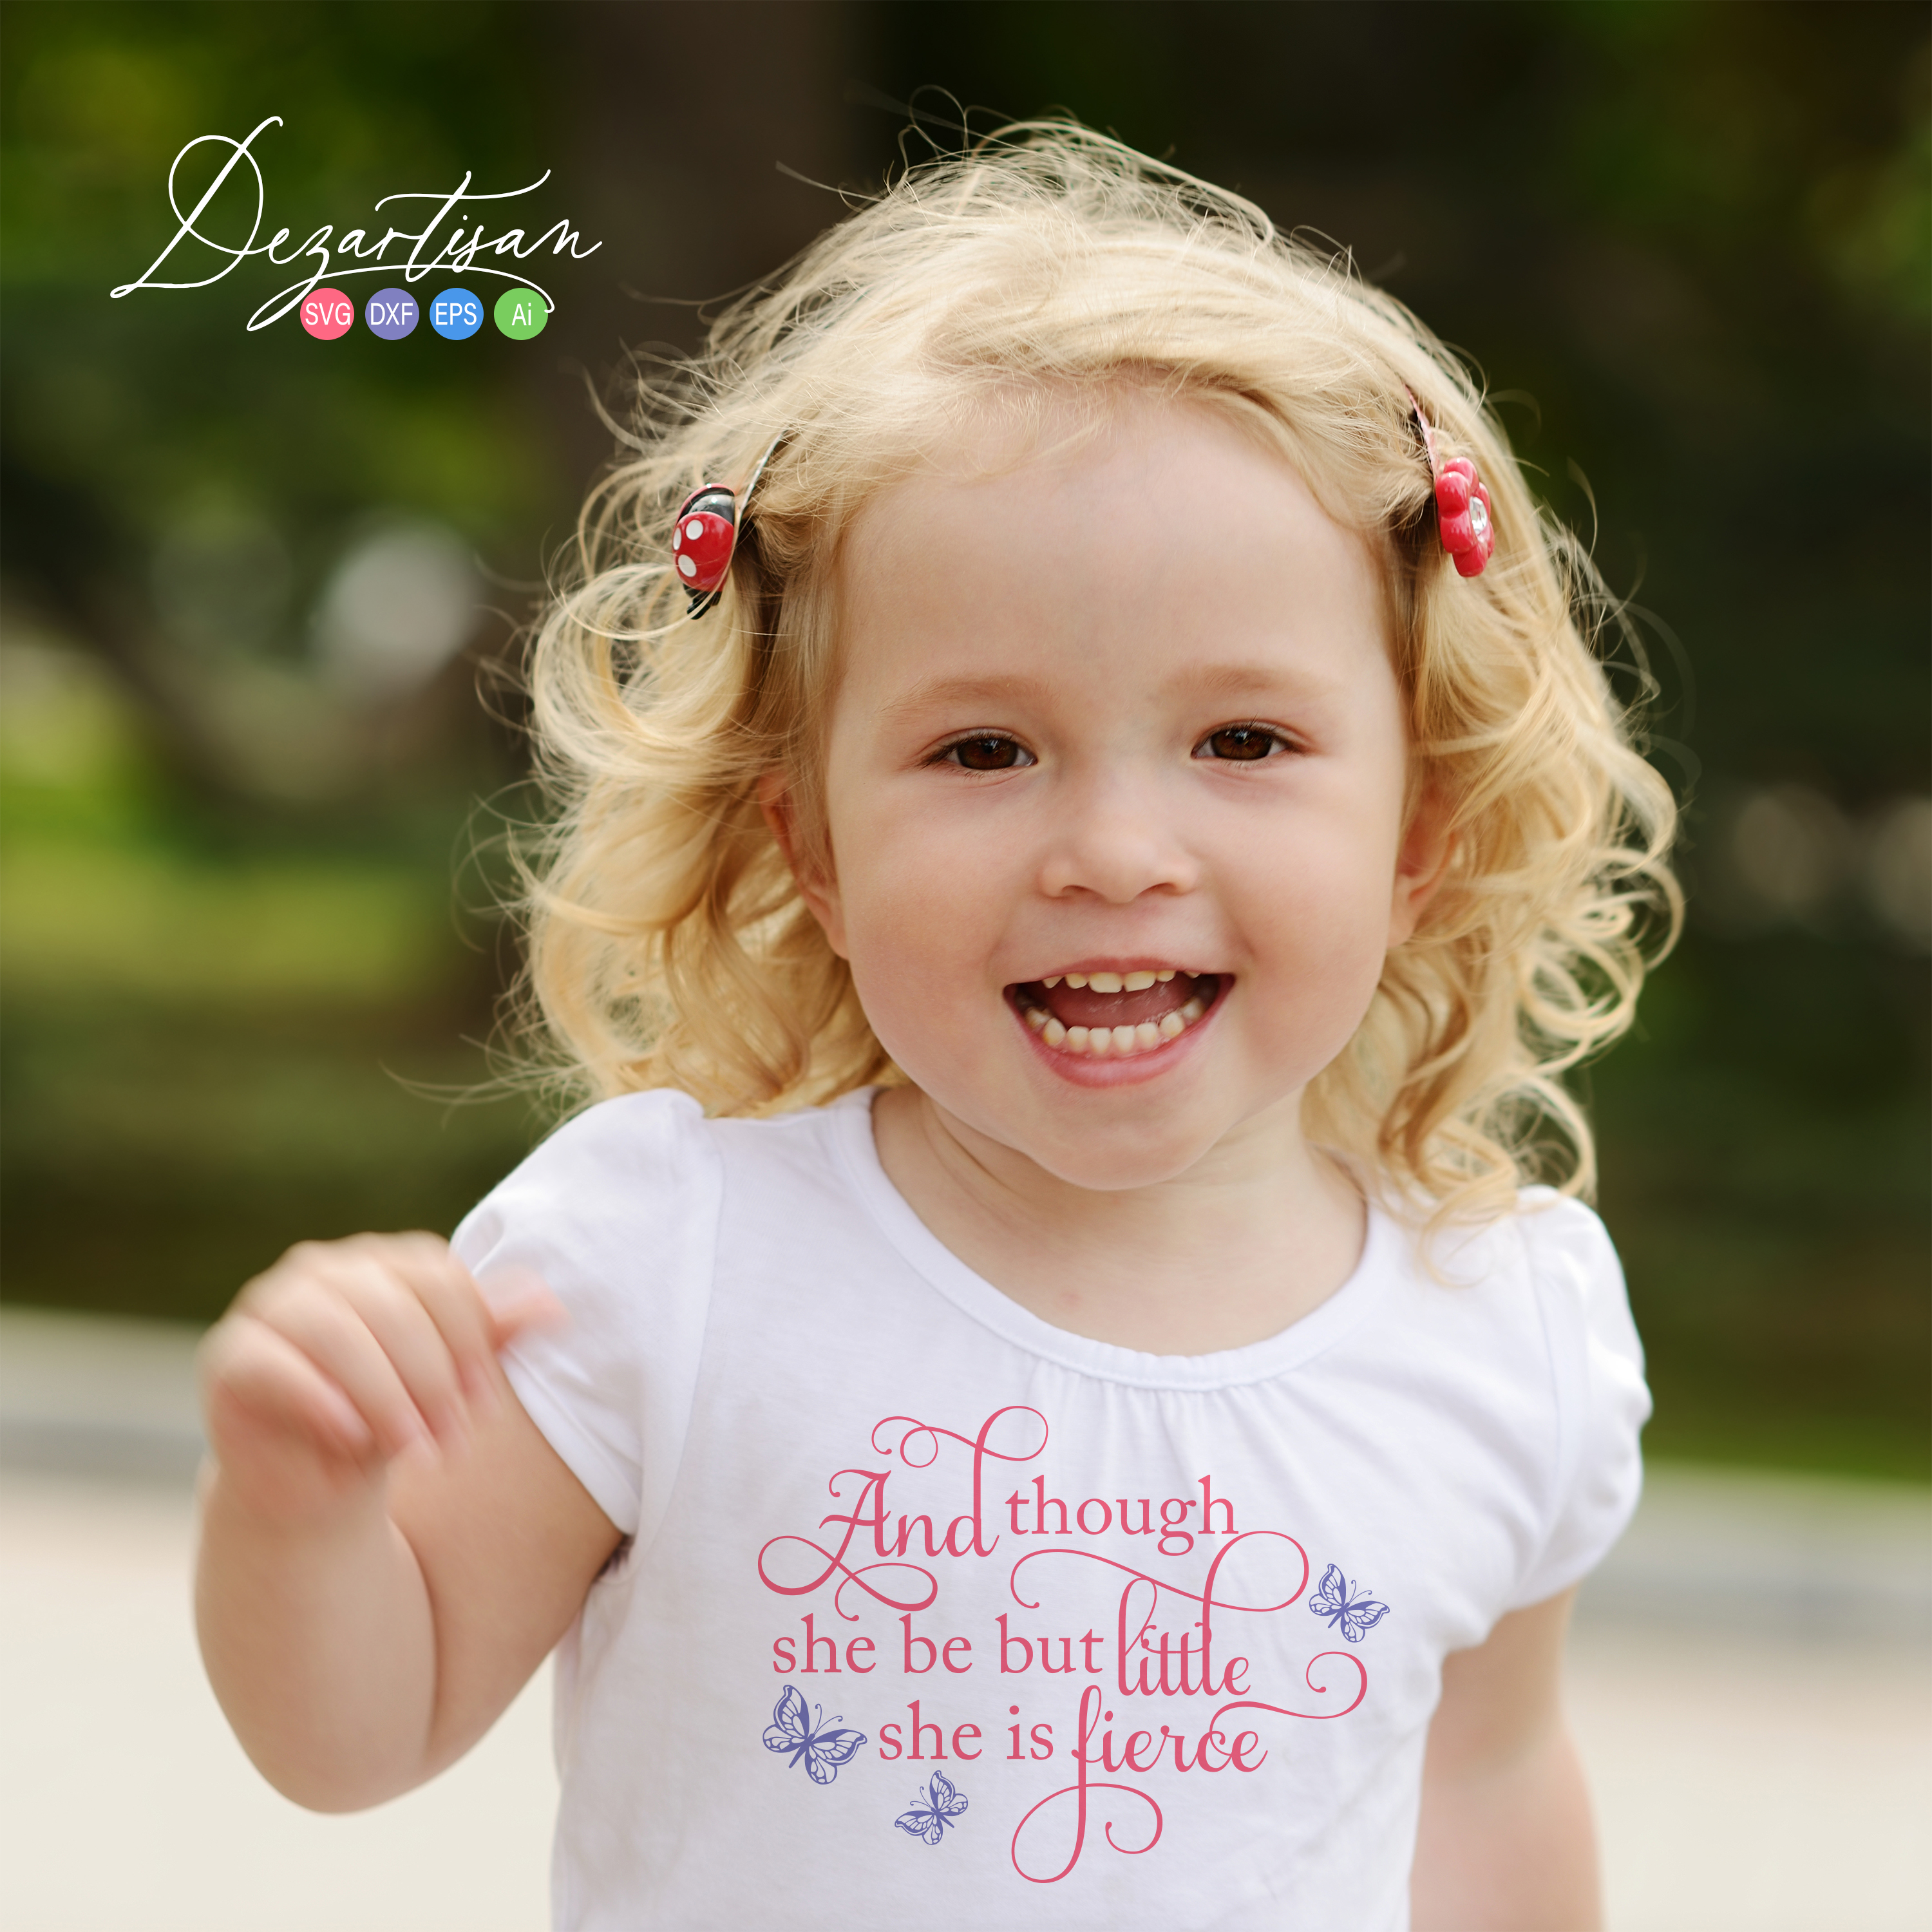 Though she be little she is fierce butterfly SVG | DXF example image 2